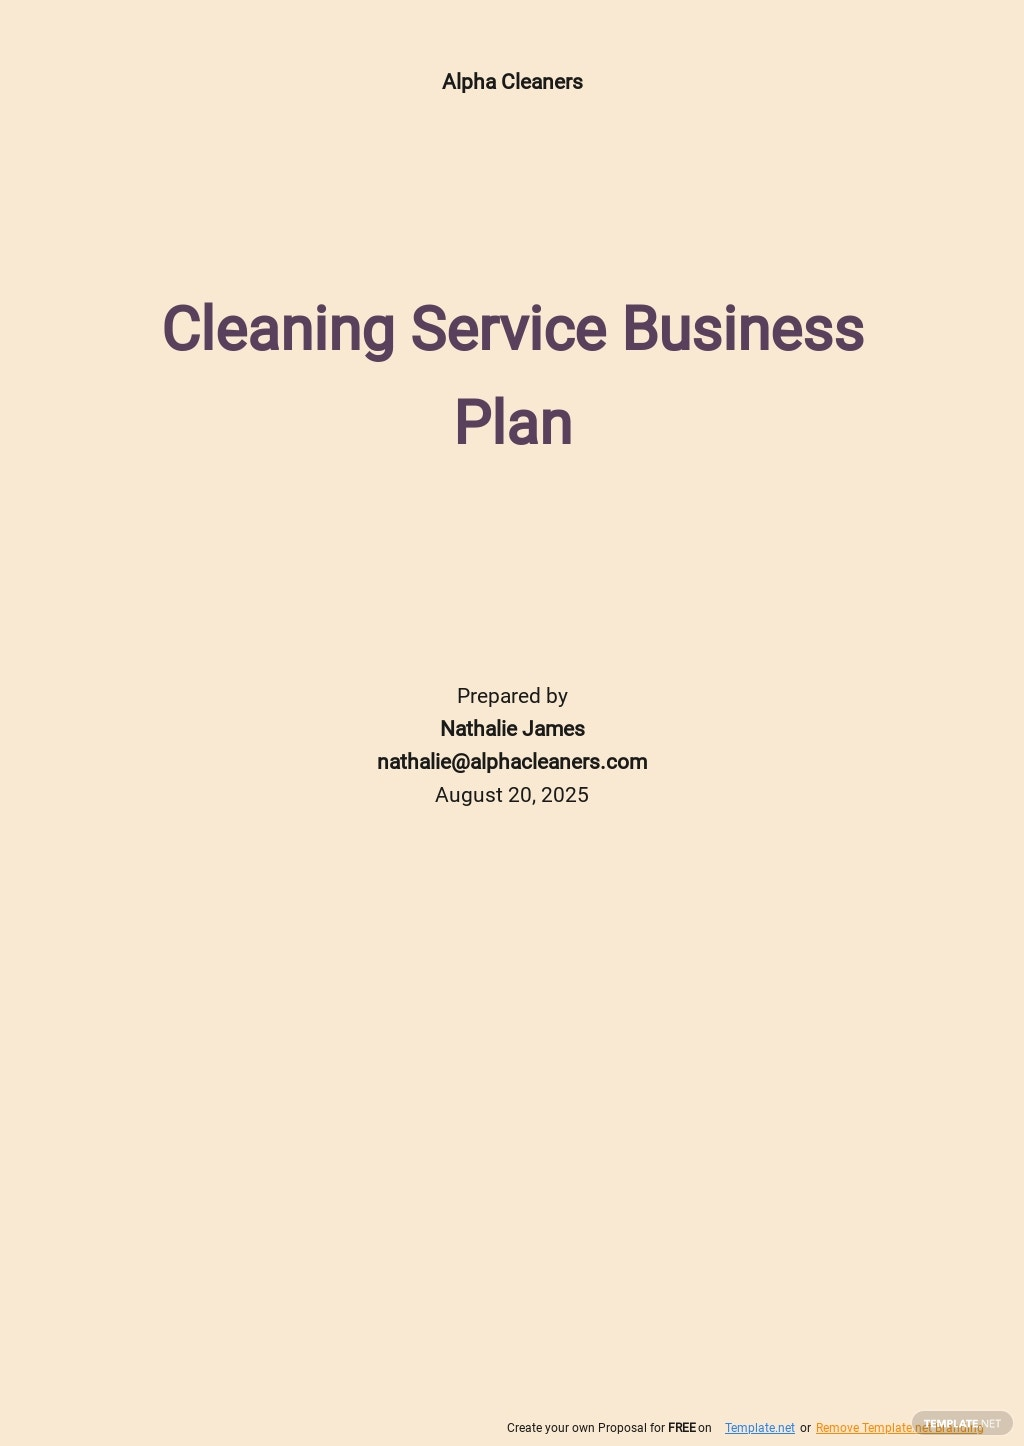 Cleaning Service Business Plan Template.jpe